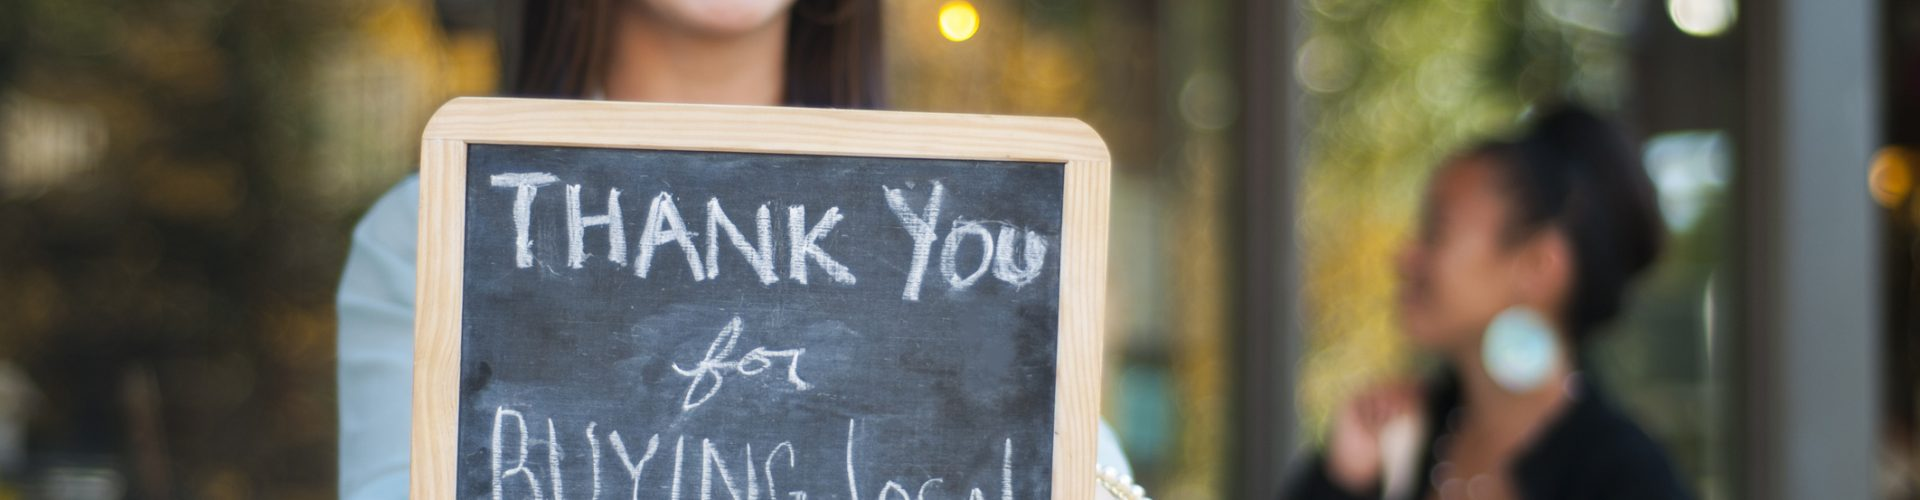 """Young business owner holding a """"Thank You for Buying Local"""" sign in front of her store with shopper in the background."""